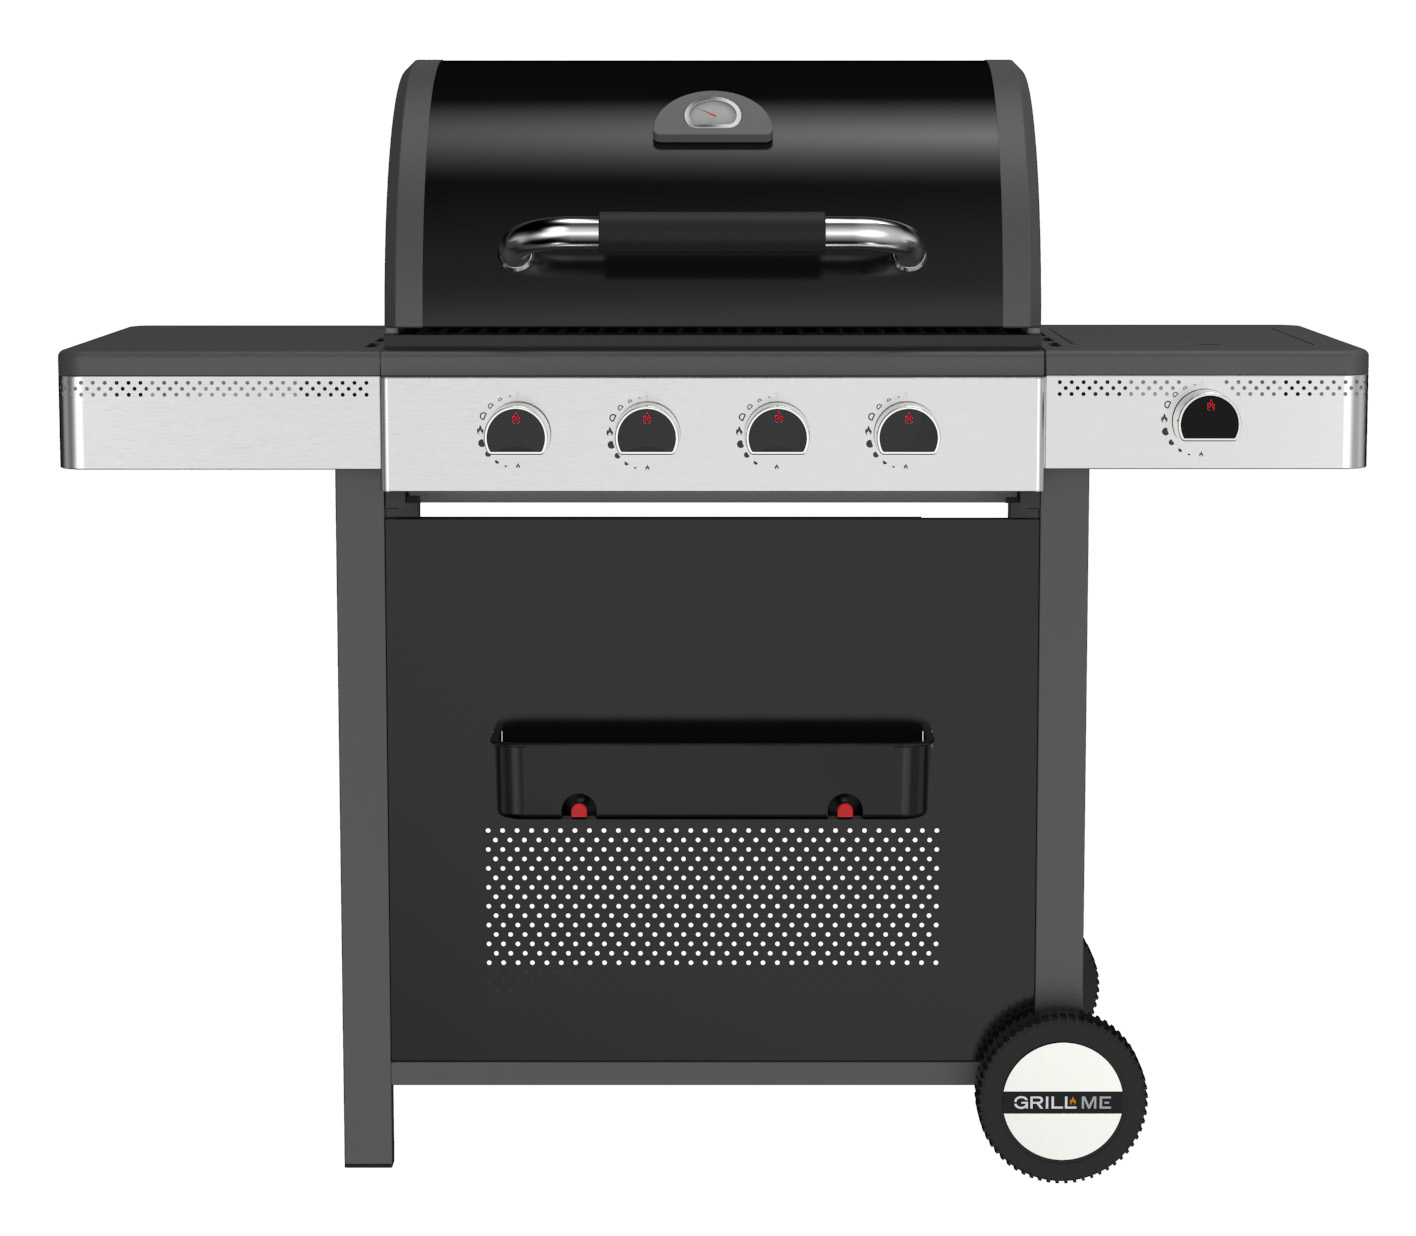 4 BRANDERS EN SIDE BRANDER GAS BARBECUE PLANCHA GRILL